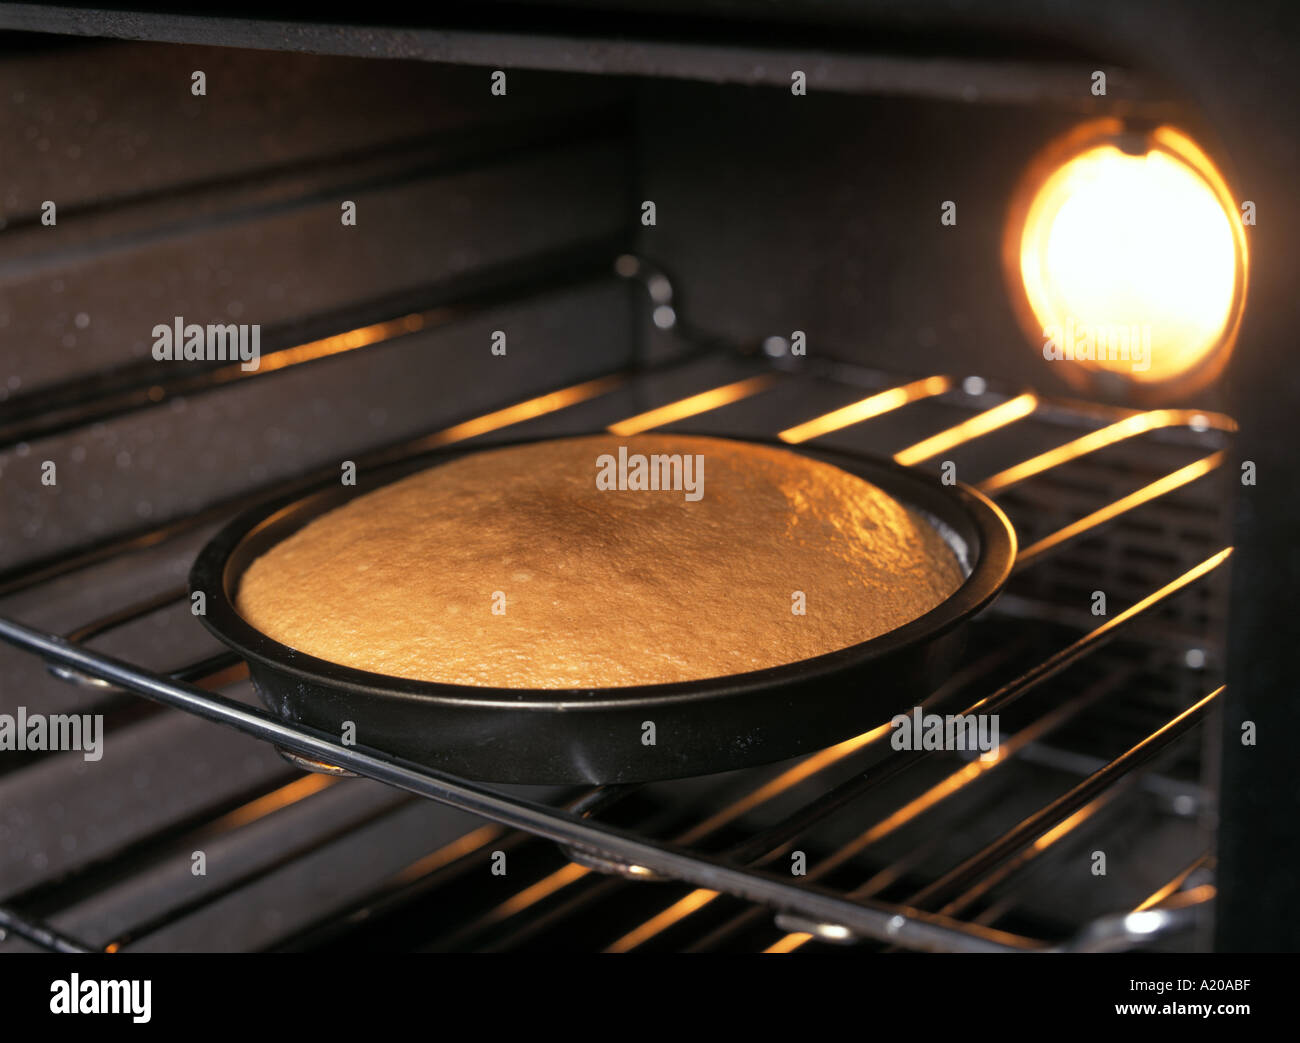 How To Cook Cake In Microwave Oven